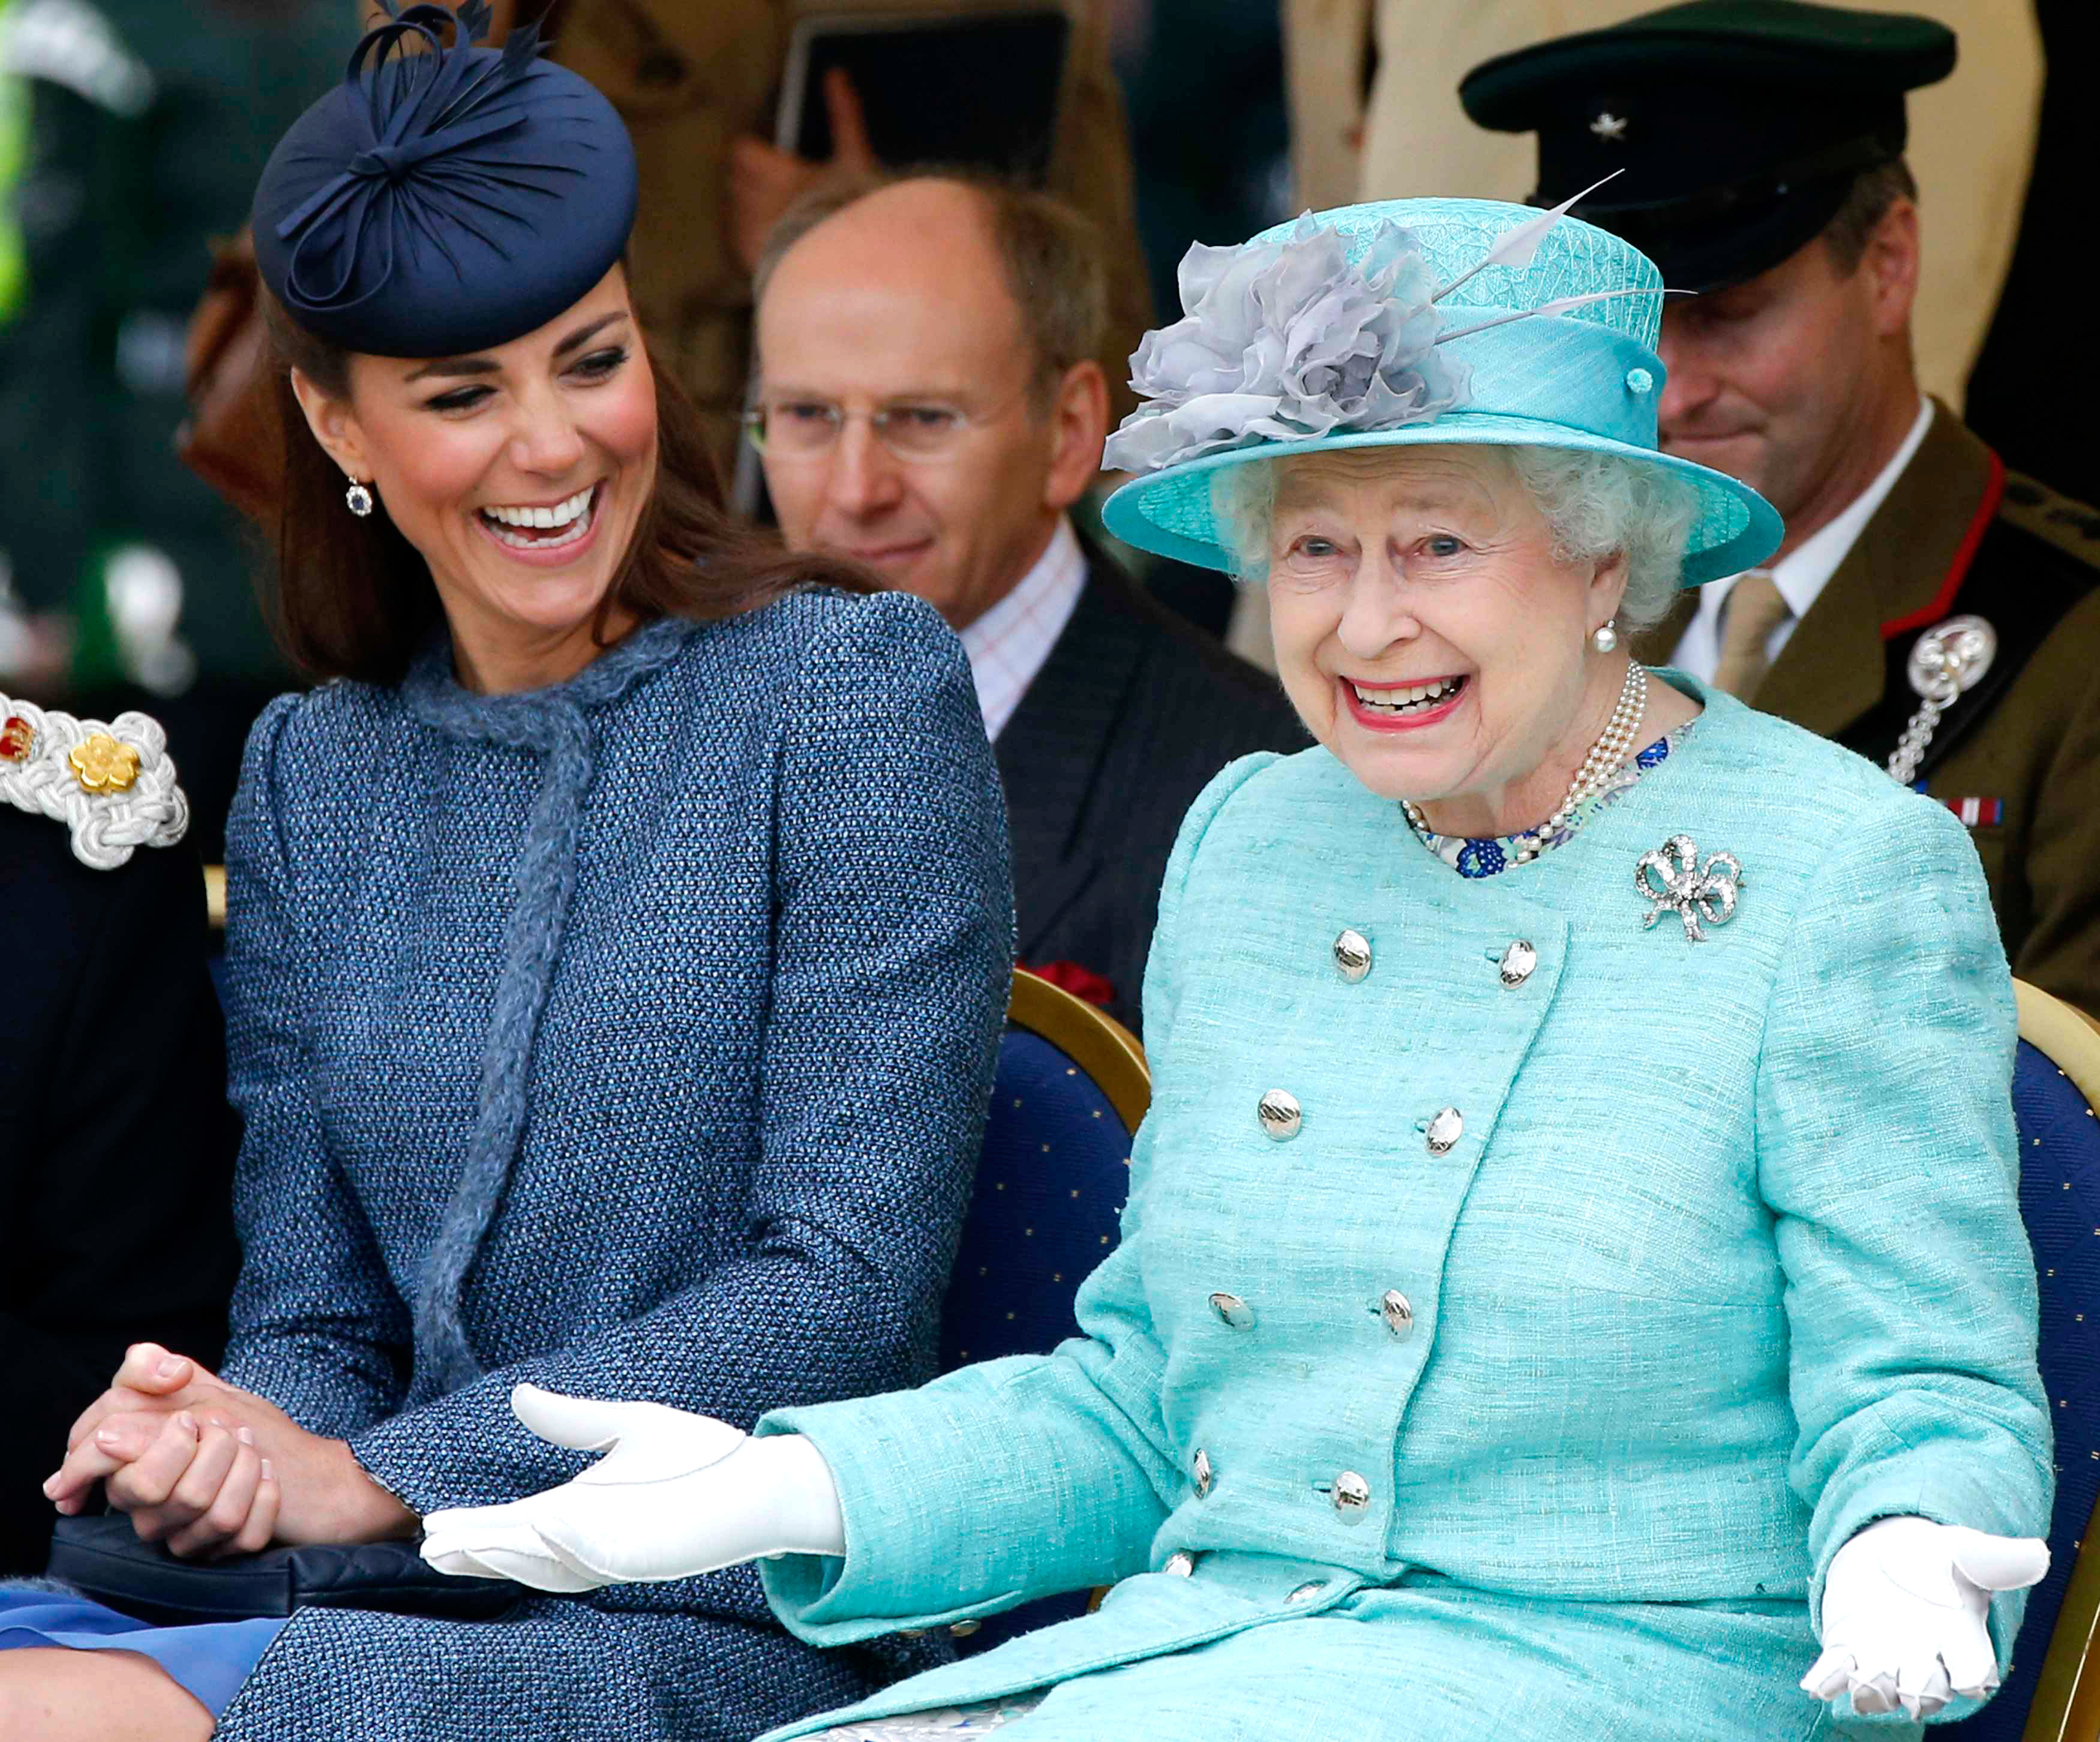 LOL! Queen Elizabeth II's Funniest Moments: Watch - Kate Middleton and Queen Elizabeth II watch part of a children's sports event while visiting Vernon Park during a Diamond Jubilee visit to Nottingham on June 13, 2012 in Nottingham, England.